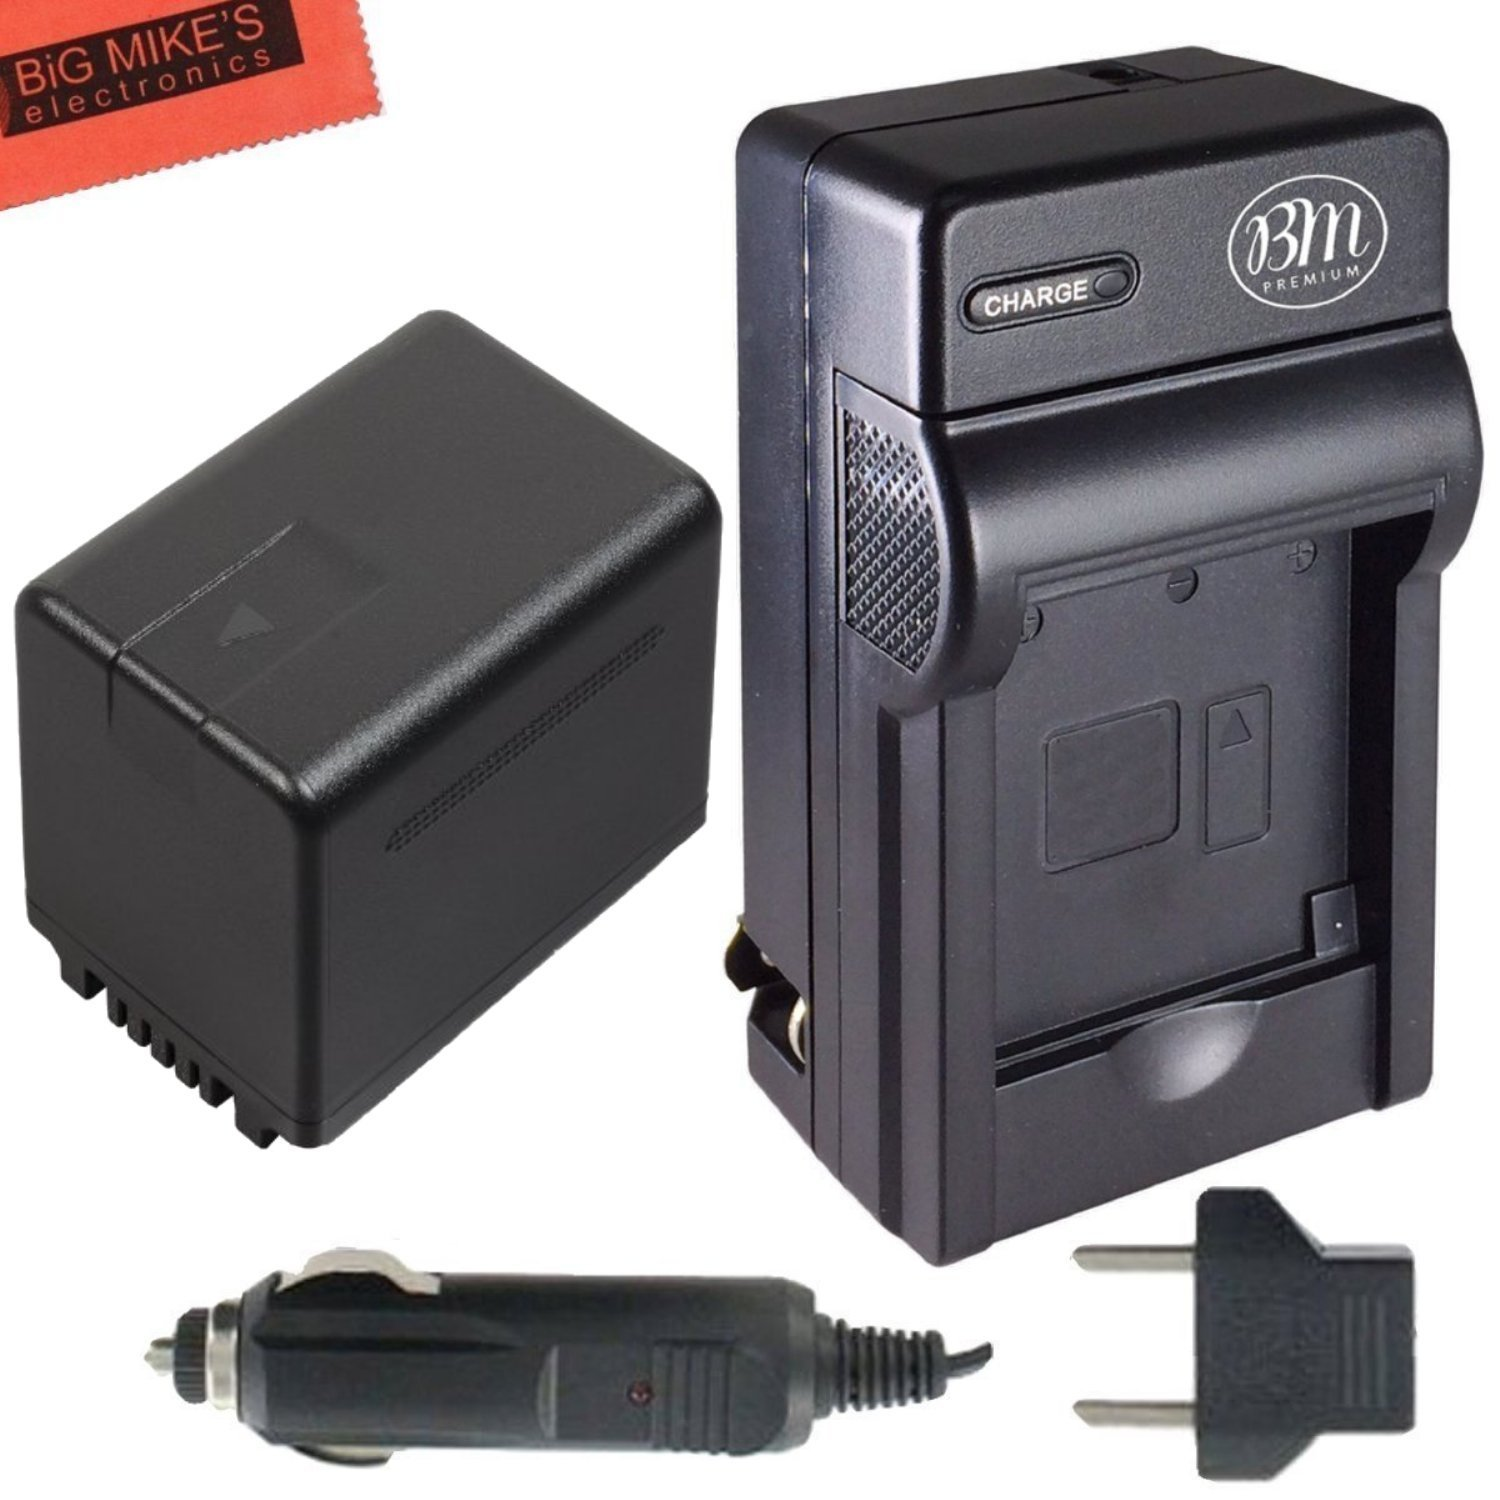 BM Premium VW-VBT380 Battery and Battery Charger for Panasonic Camcorders Big Mike' s VWVBT380